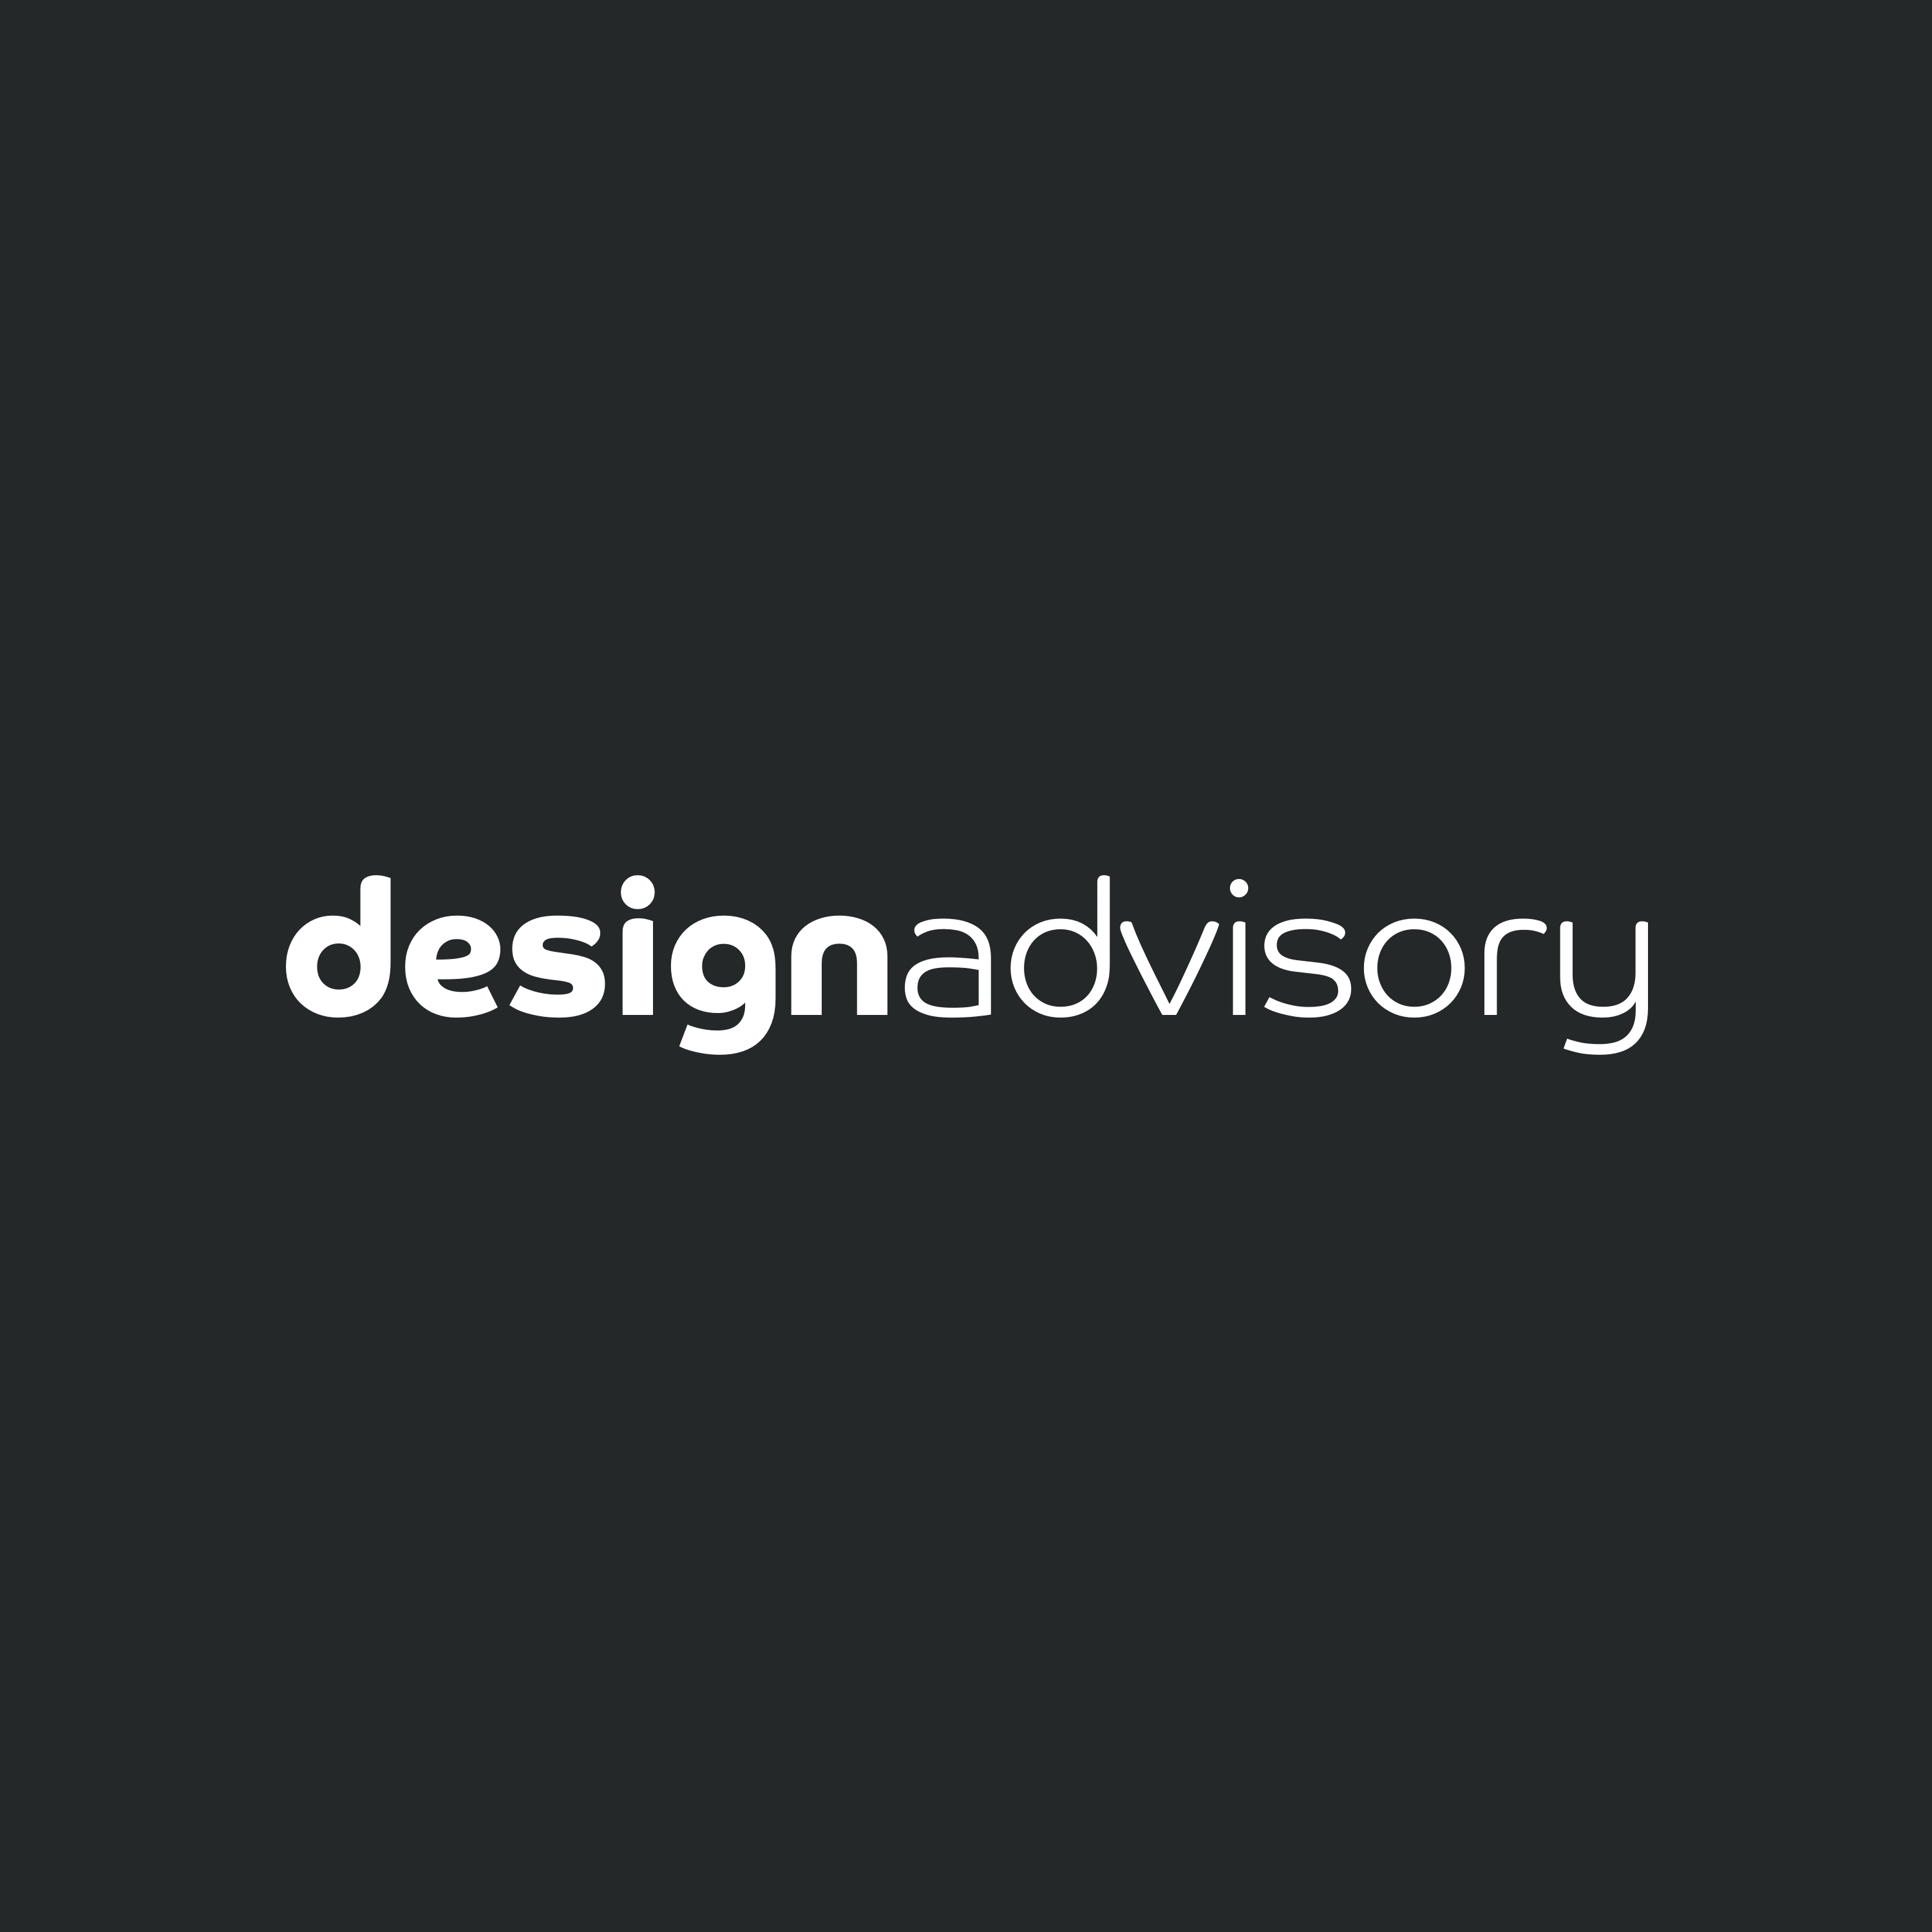 Design Advisory Logo